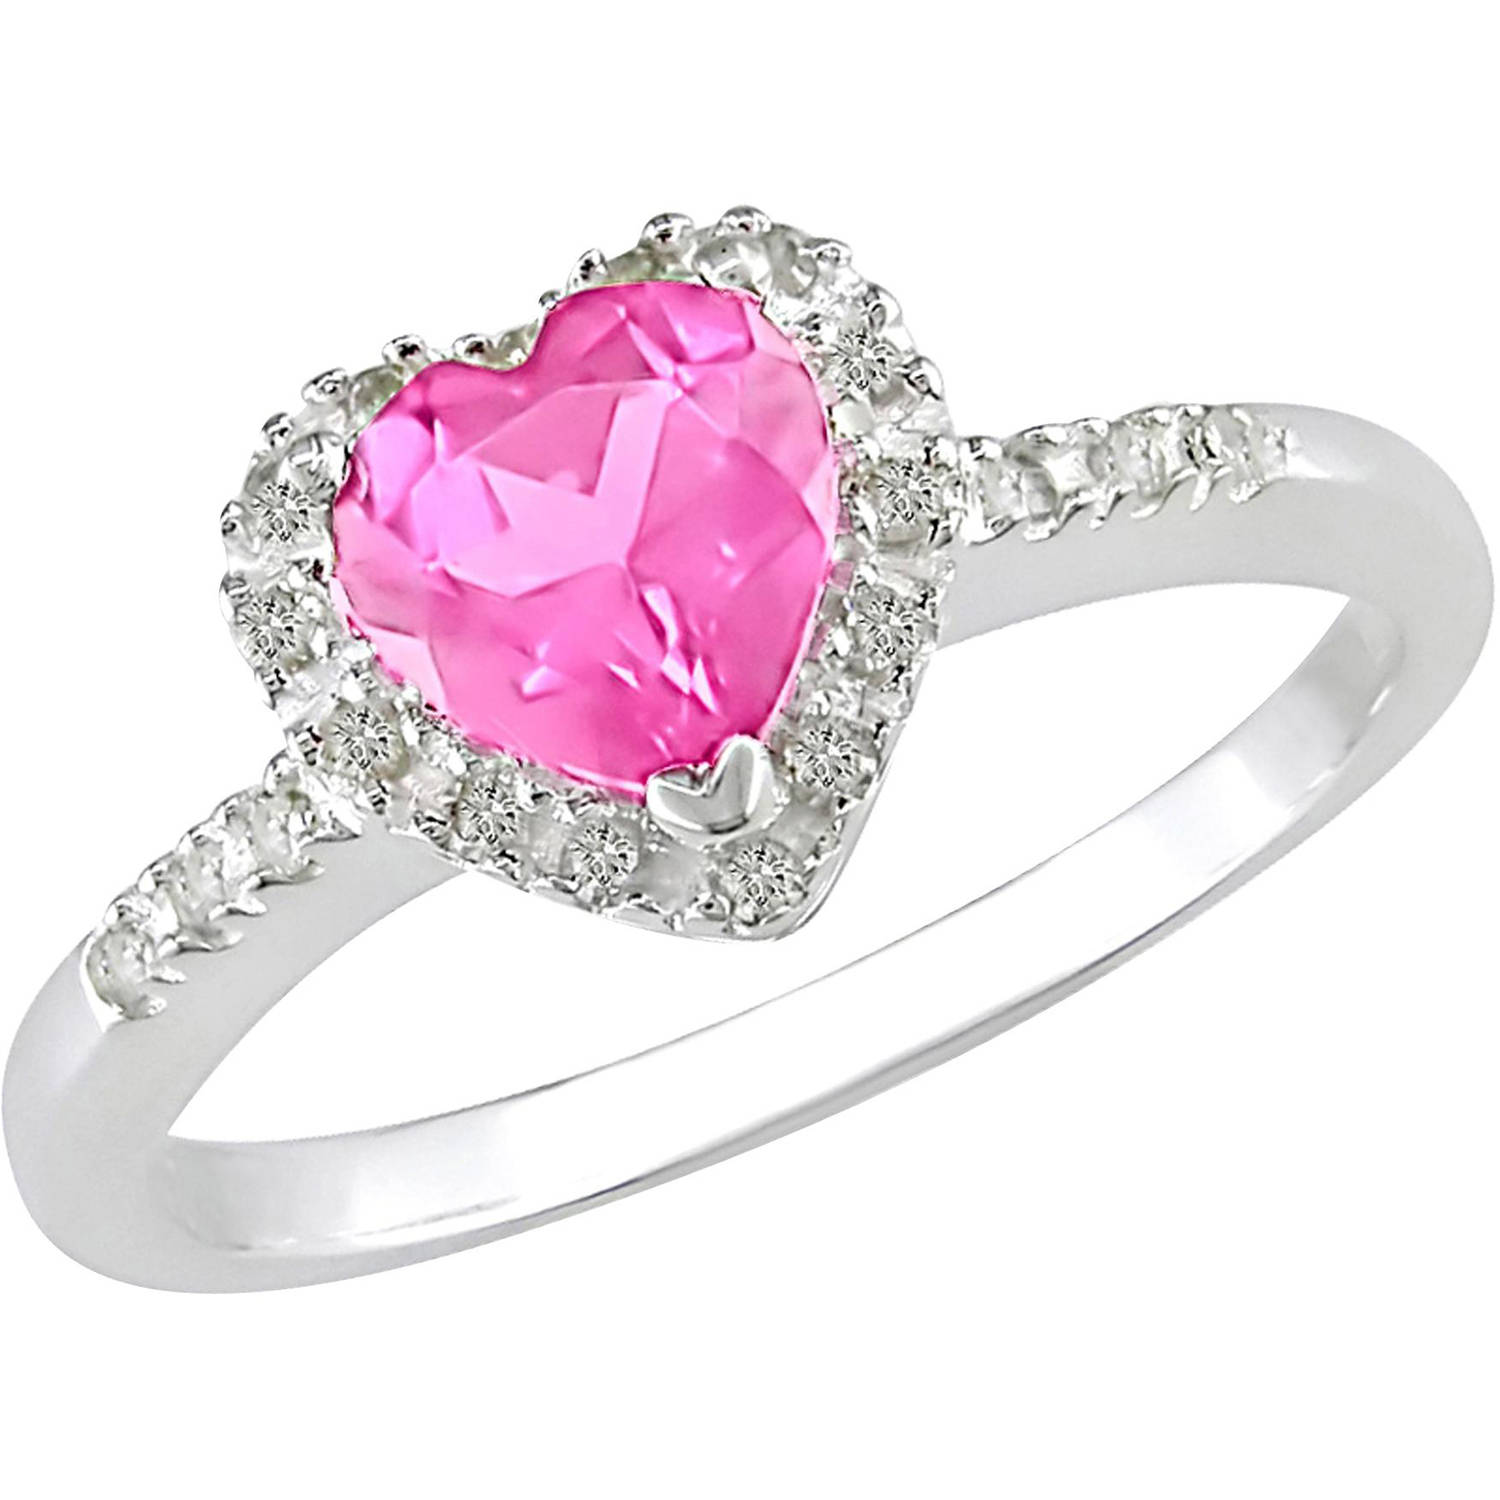 diamond halo sapphire engagement white shaped gold home and rings rose product heart wedding pink with ring